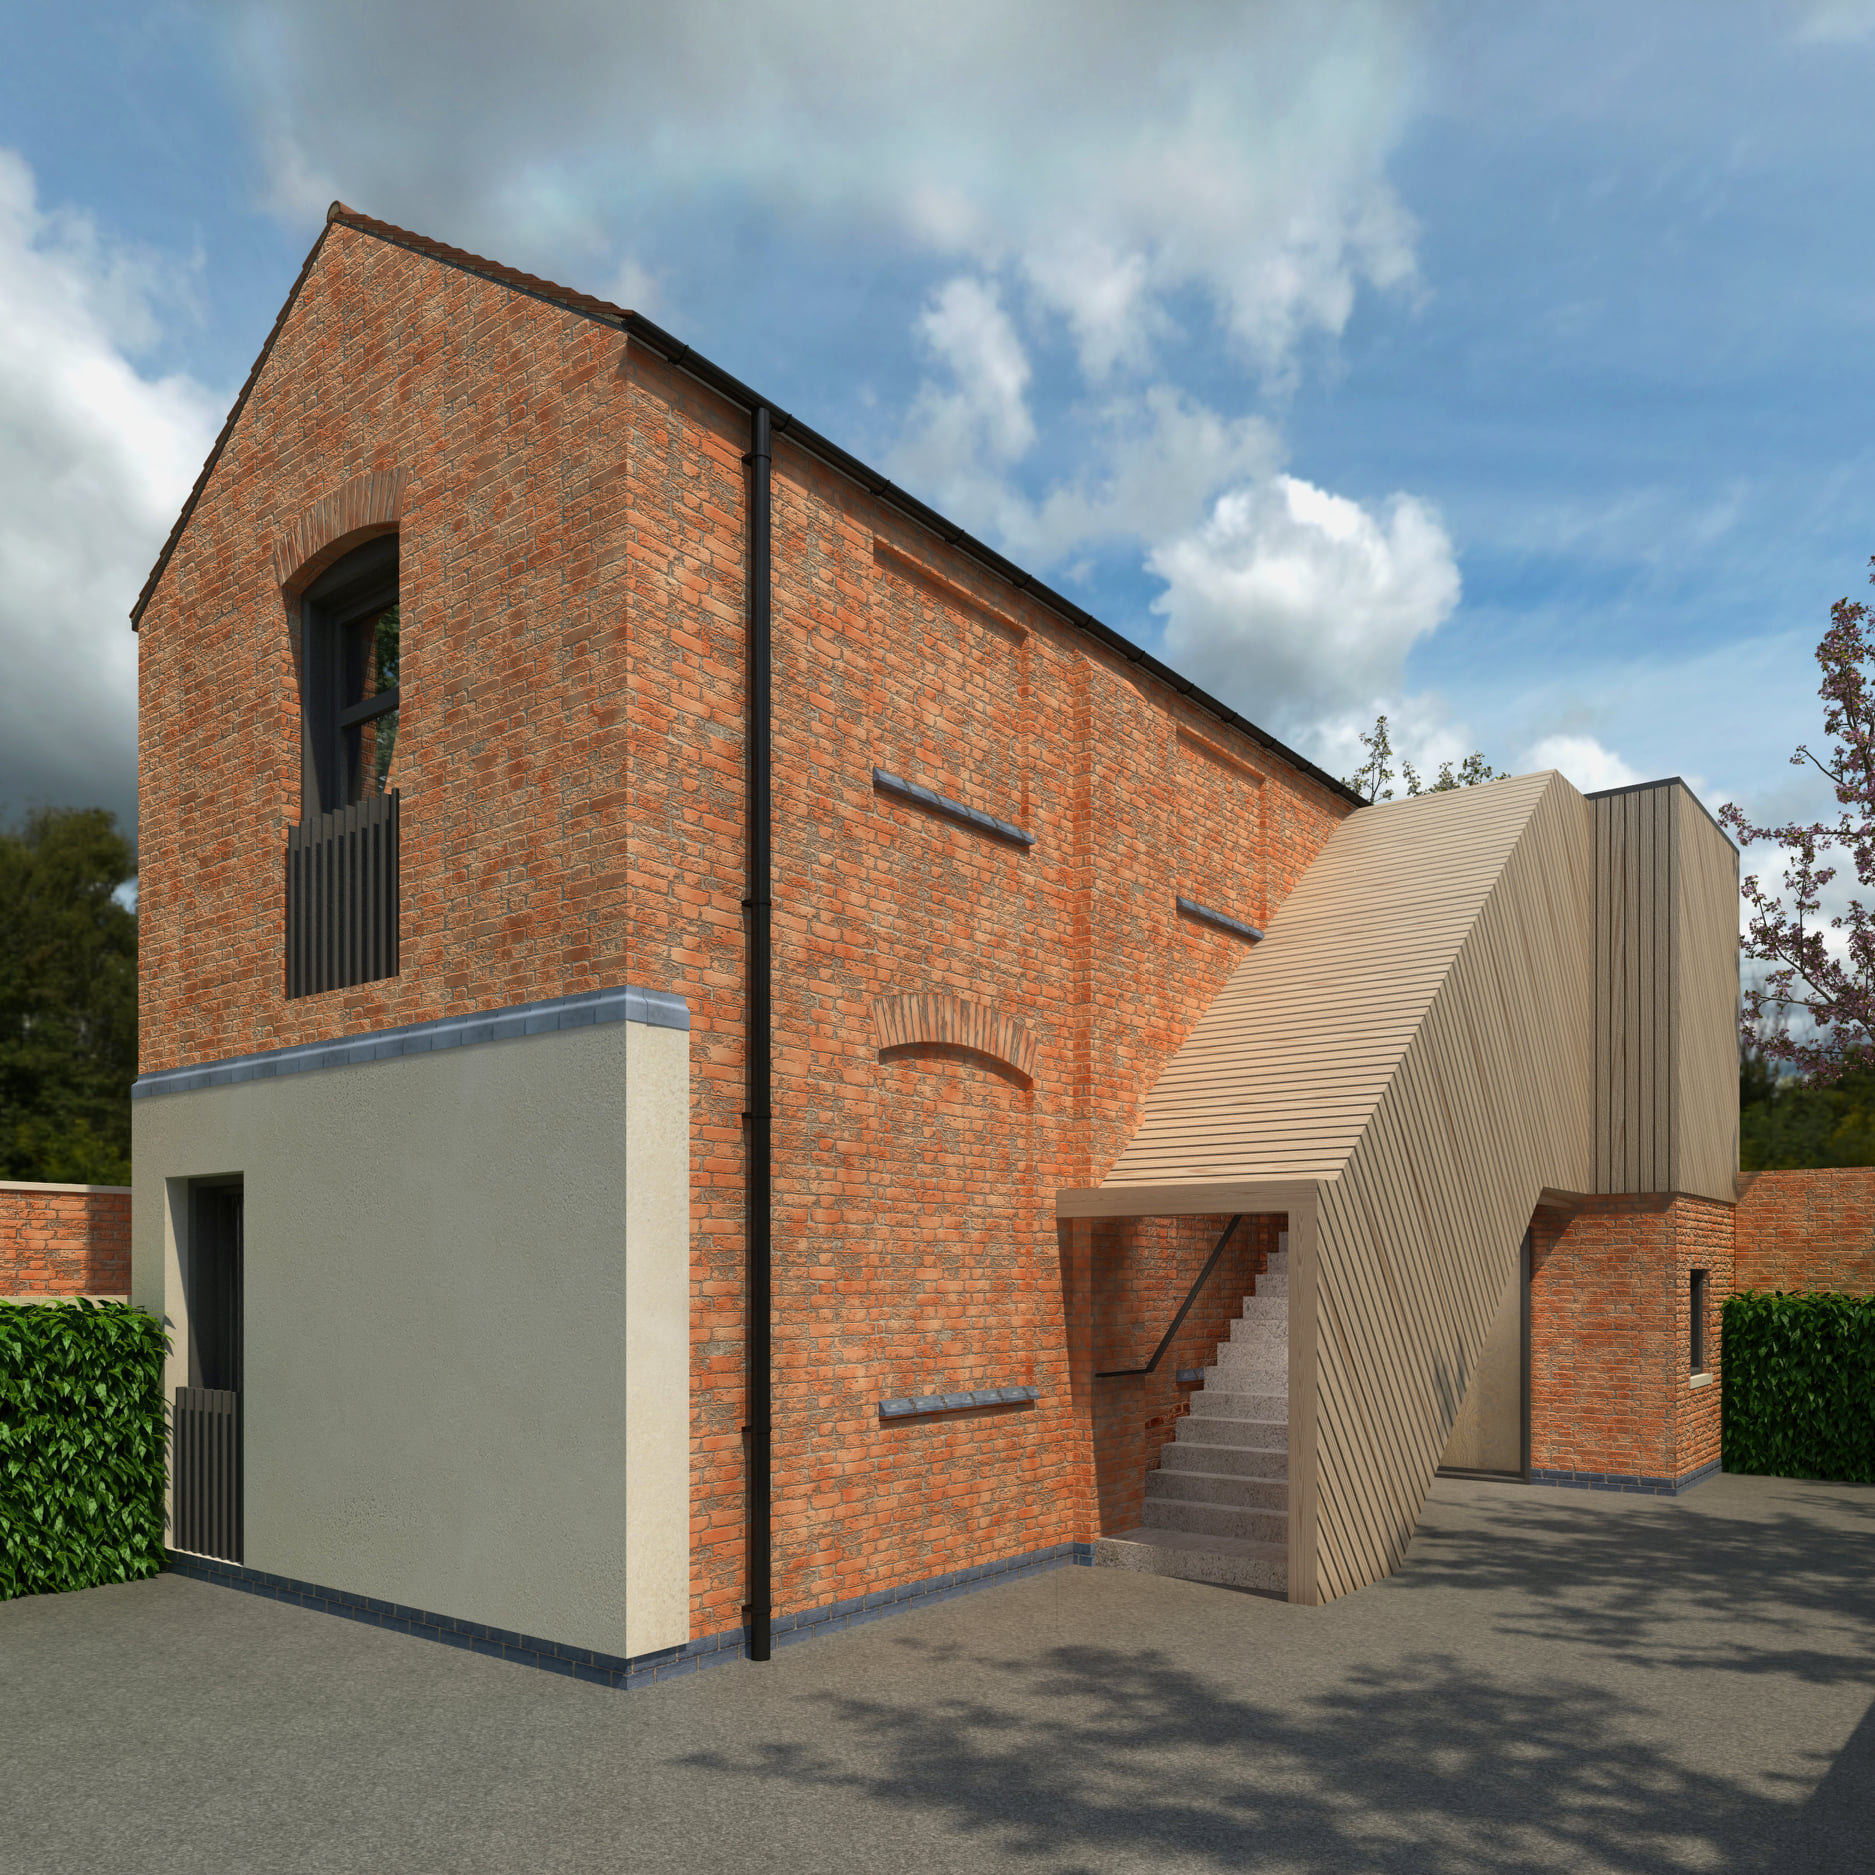 Refurbished Coach House with external timber staircase